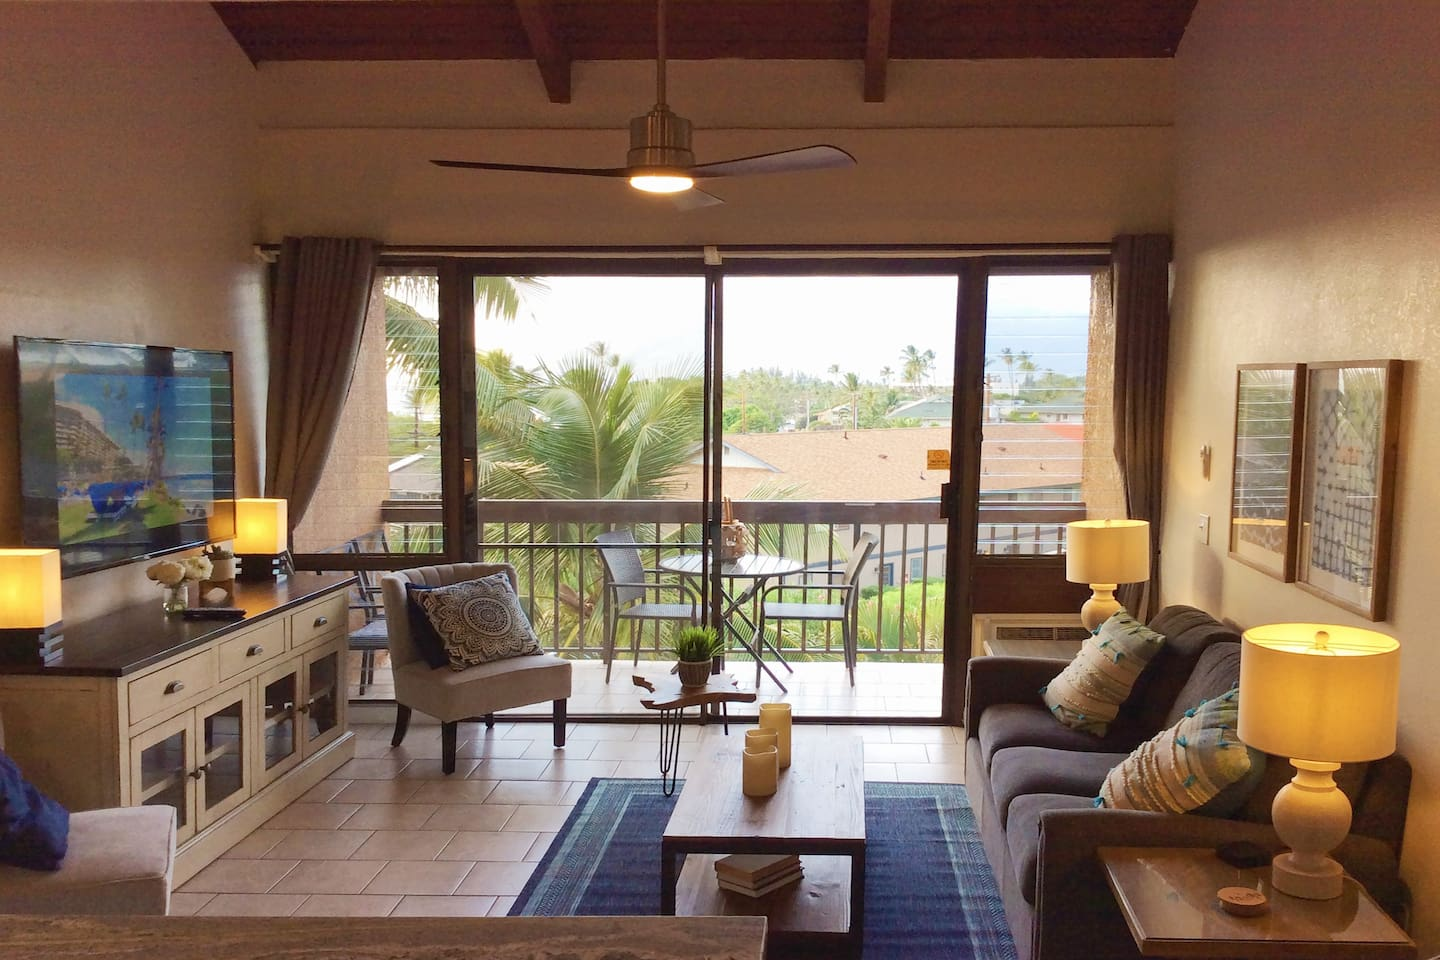 Living area of the condo with with view from the lanai, features air conditioner, ceiling fan, sleeper sofa, comfy chairs, and large flat-screen TV.